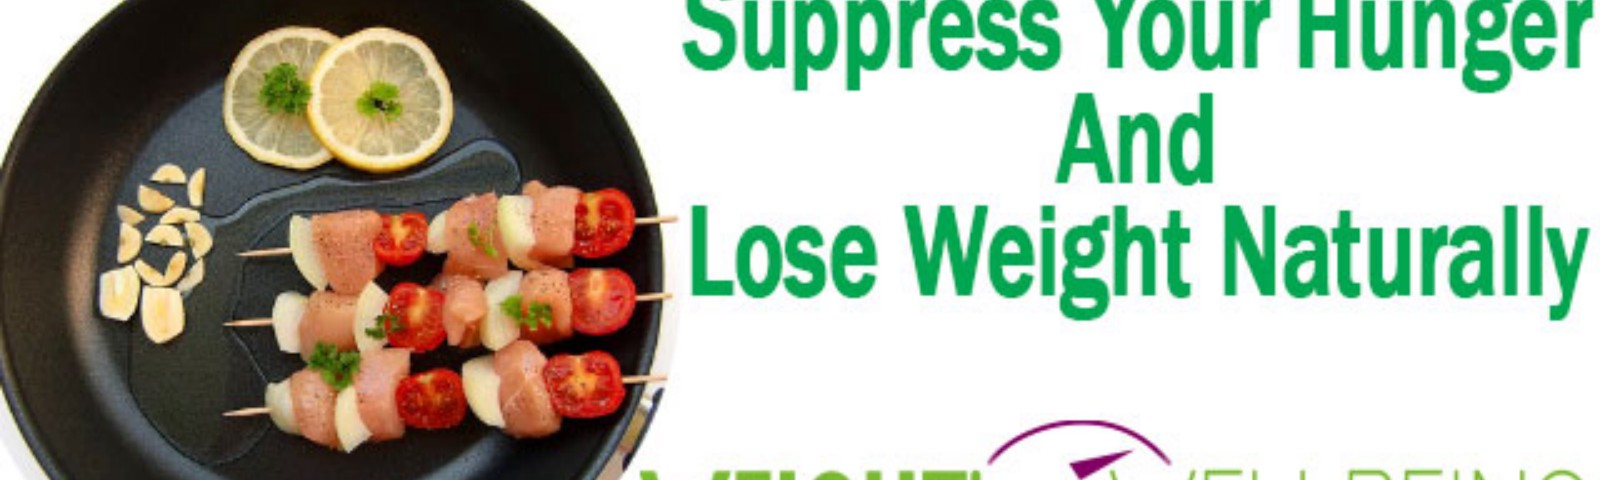 suppress-hunger-and-lose-weight-naturally